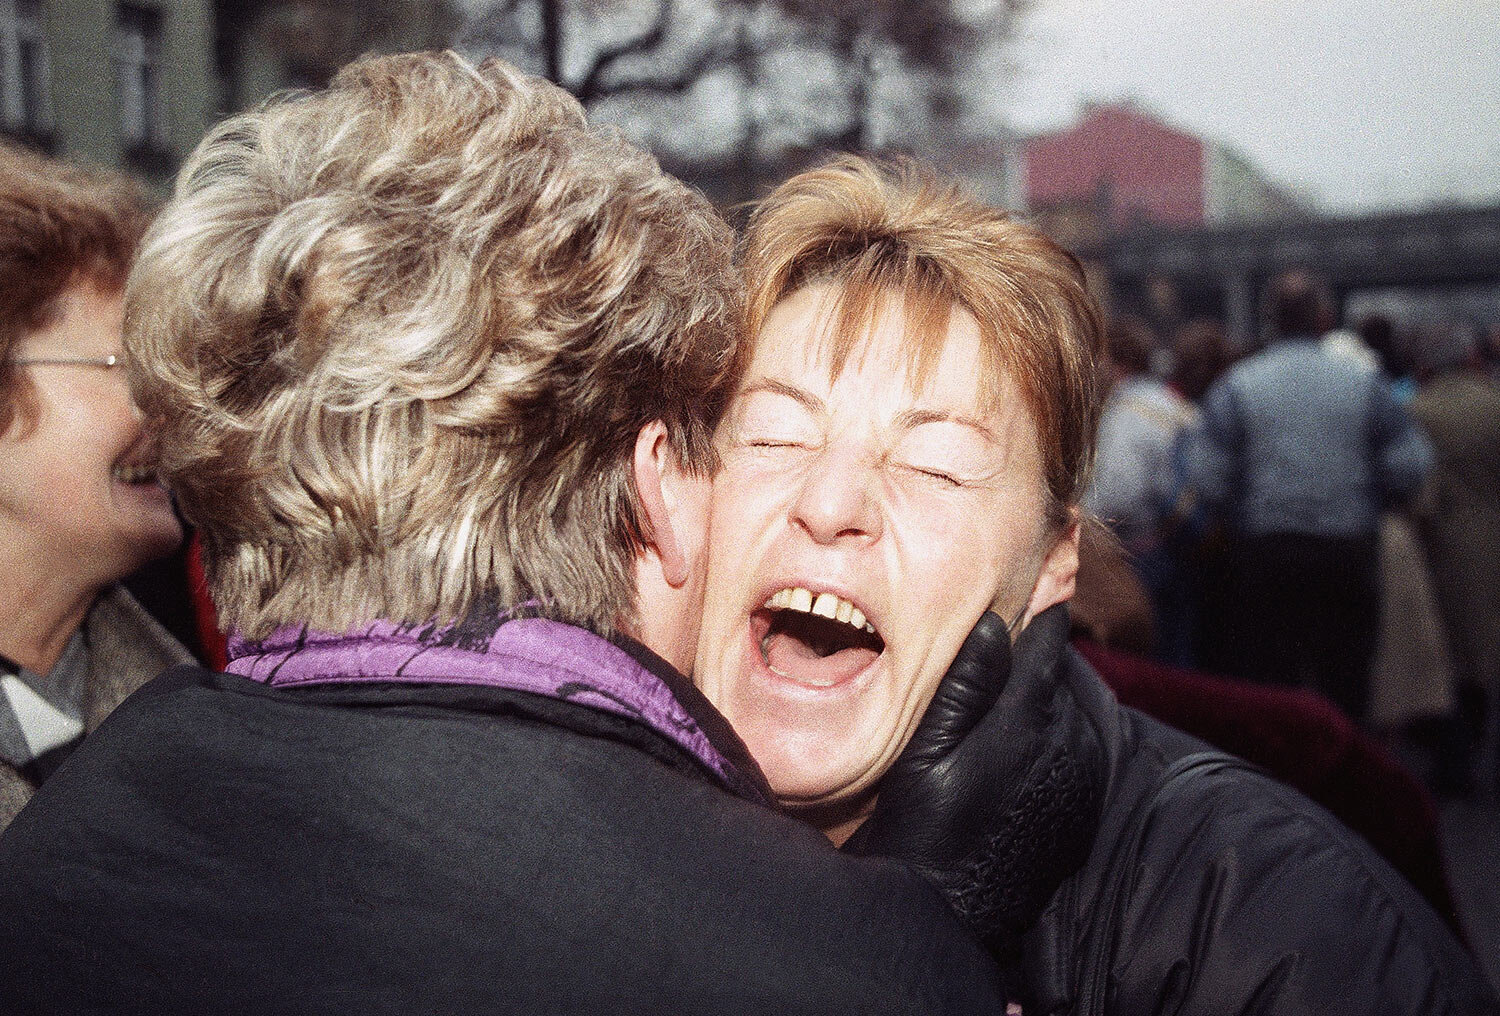 East German Rosemarie Doln is overwhelmed with emotion as she is welcomed by an unidentified relative at the opening of latest wall passage at Wollankstrasse in West Berlin?s district of Wedding, Nov. 13, 1989 in Berlin. (AP Photo/John Gaps III)